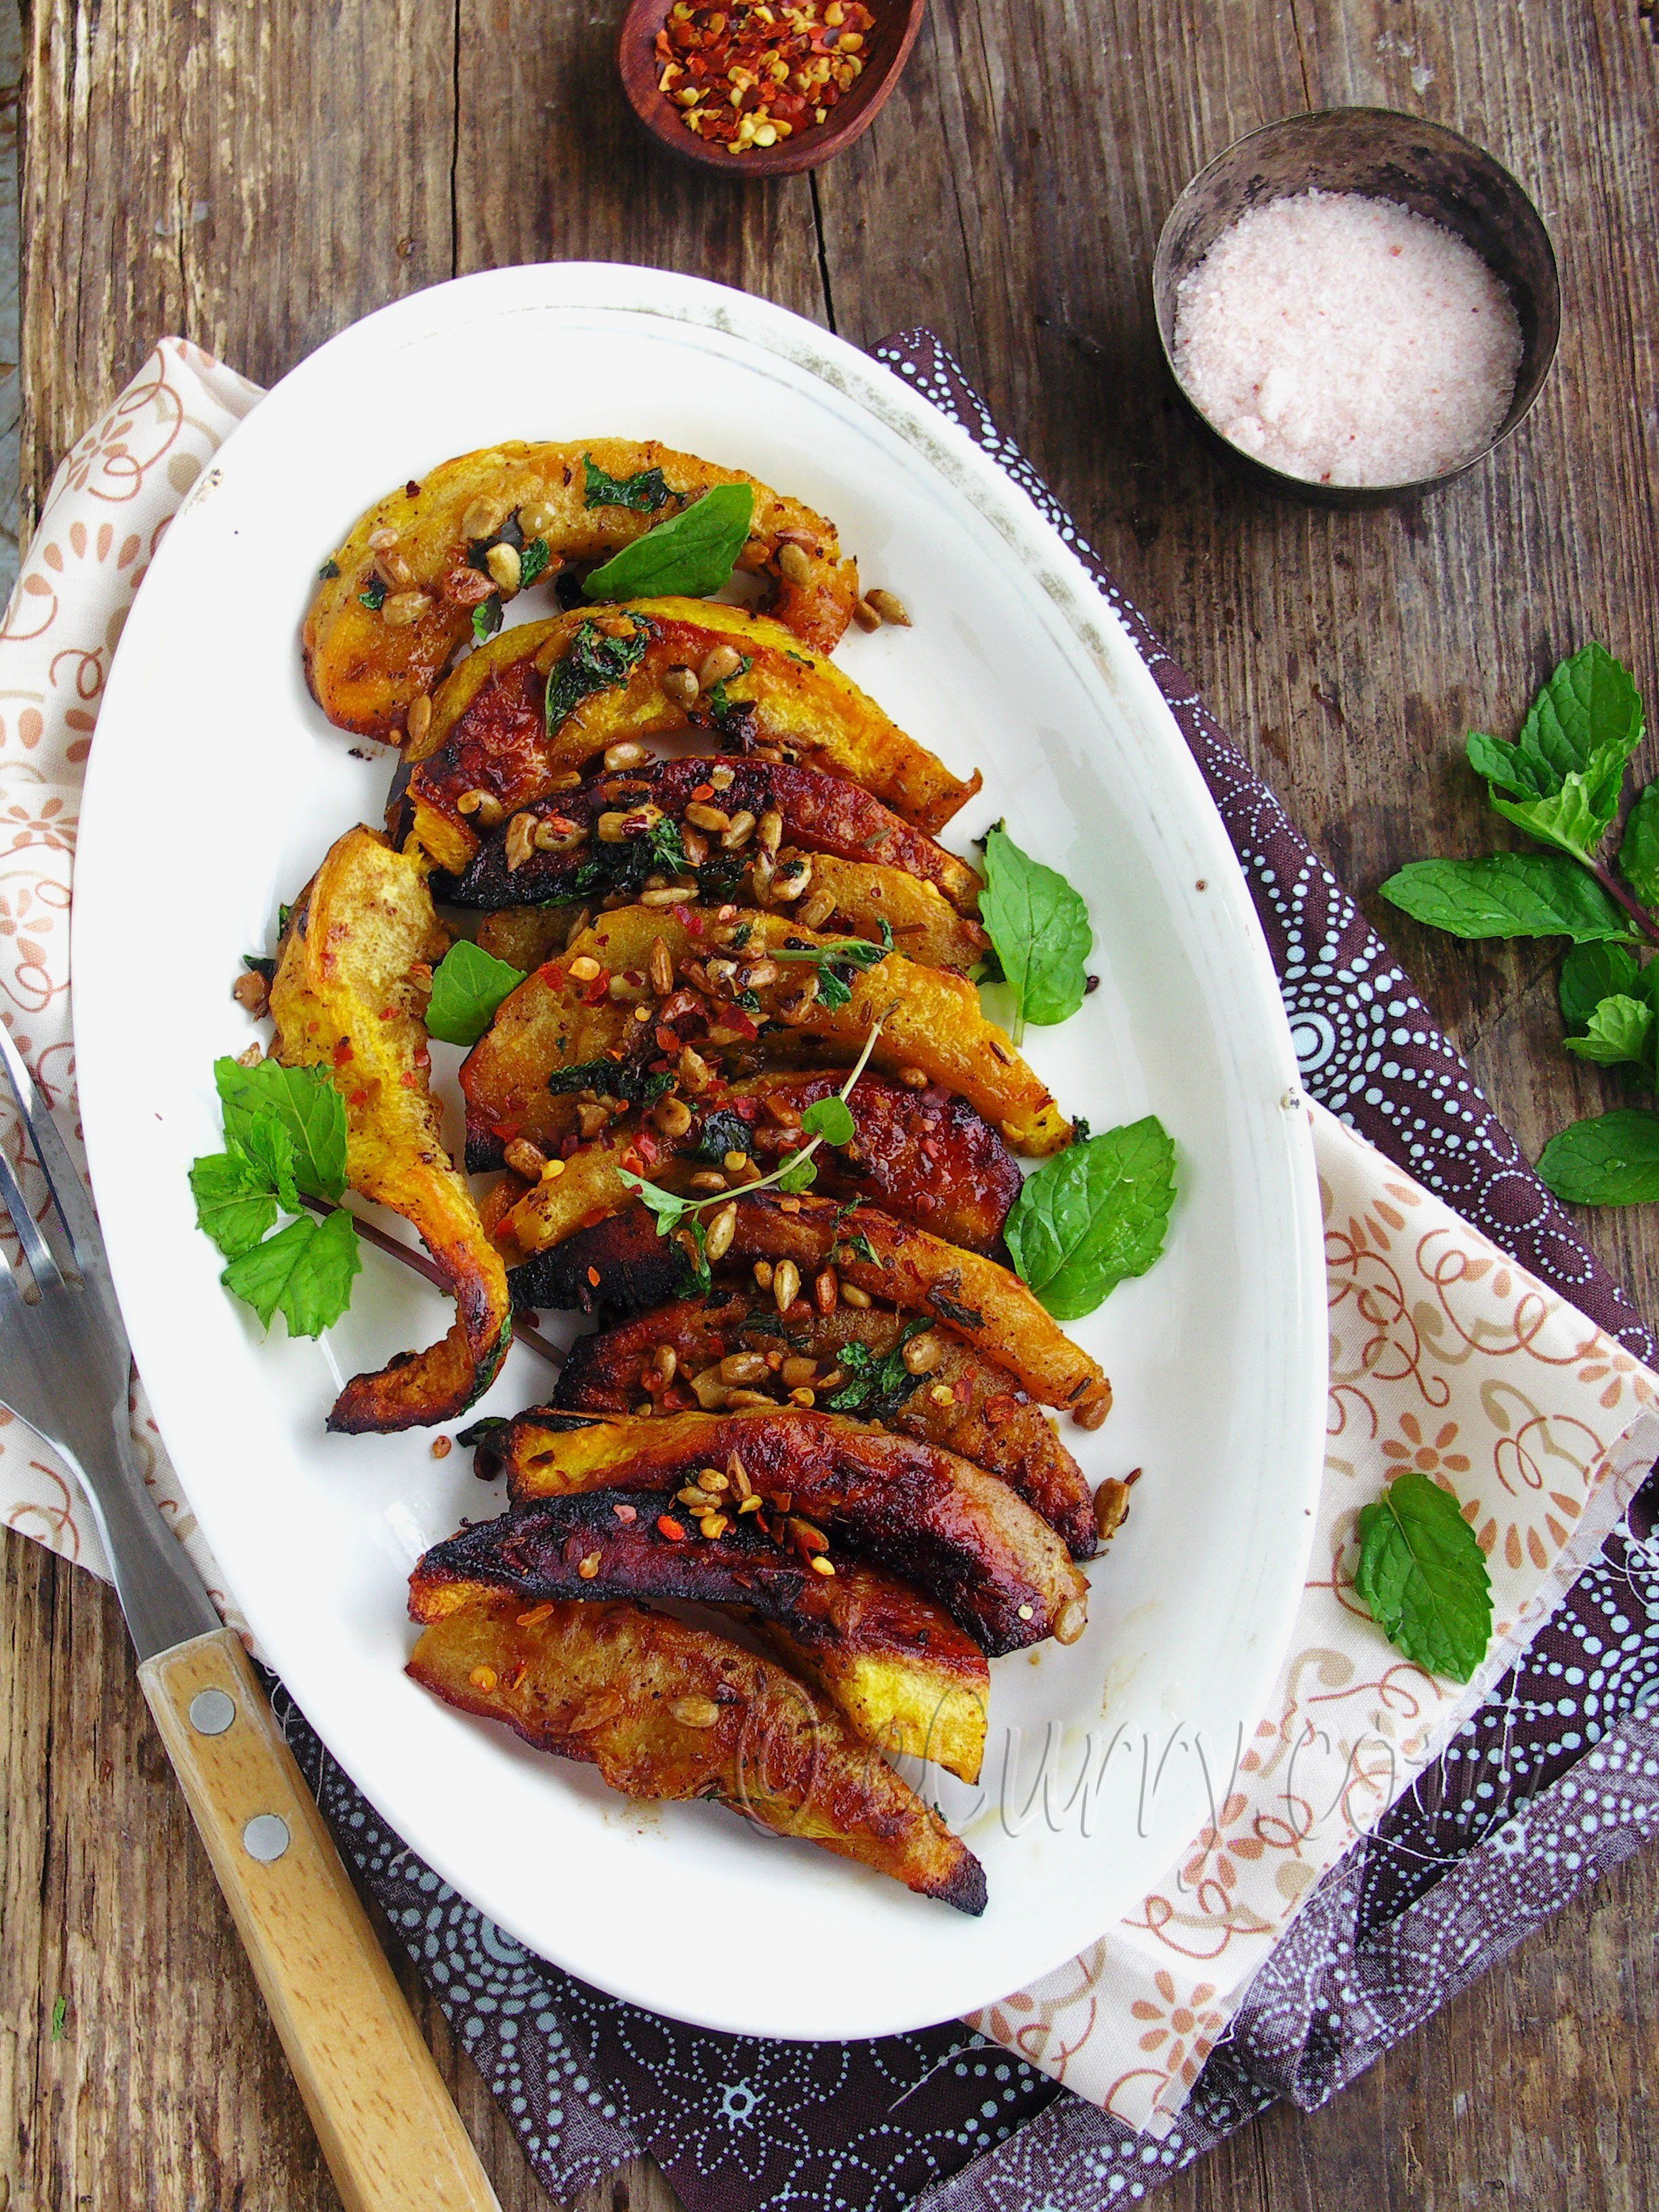 Roasted Acorn Squash With Mint Sumac And Sunflower Seeds Recipe